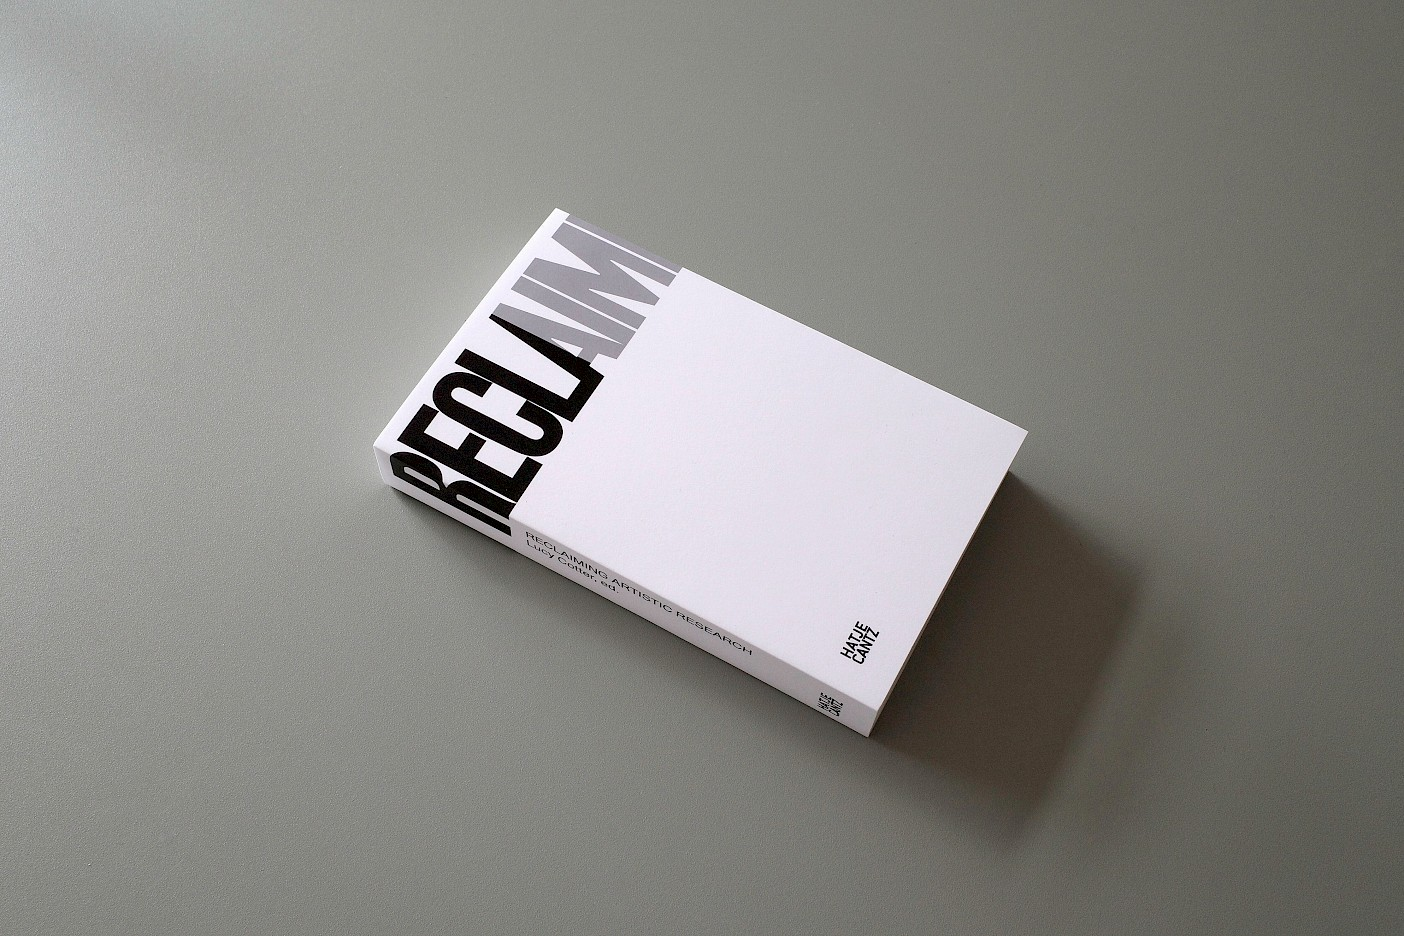 Lucy Cotter, Reclaiming Artistic Research, 2019, book design: Thomáš Celizna